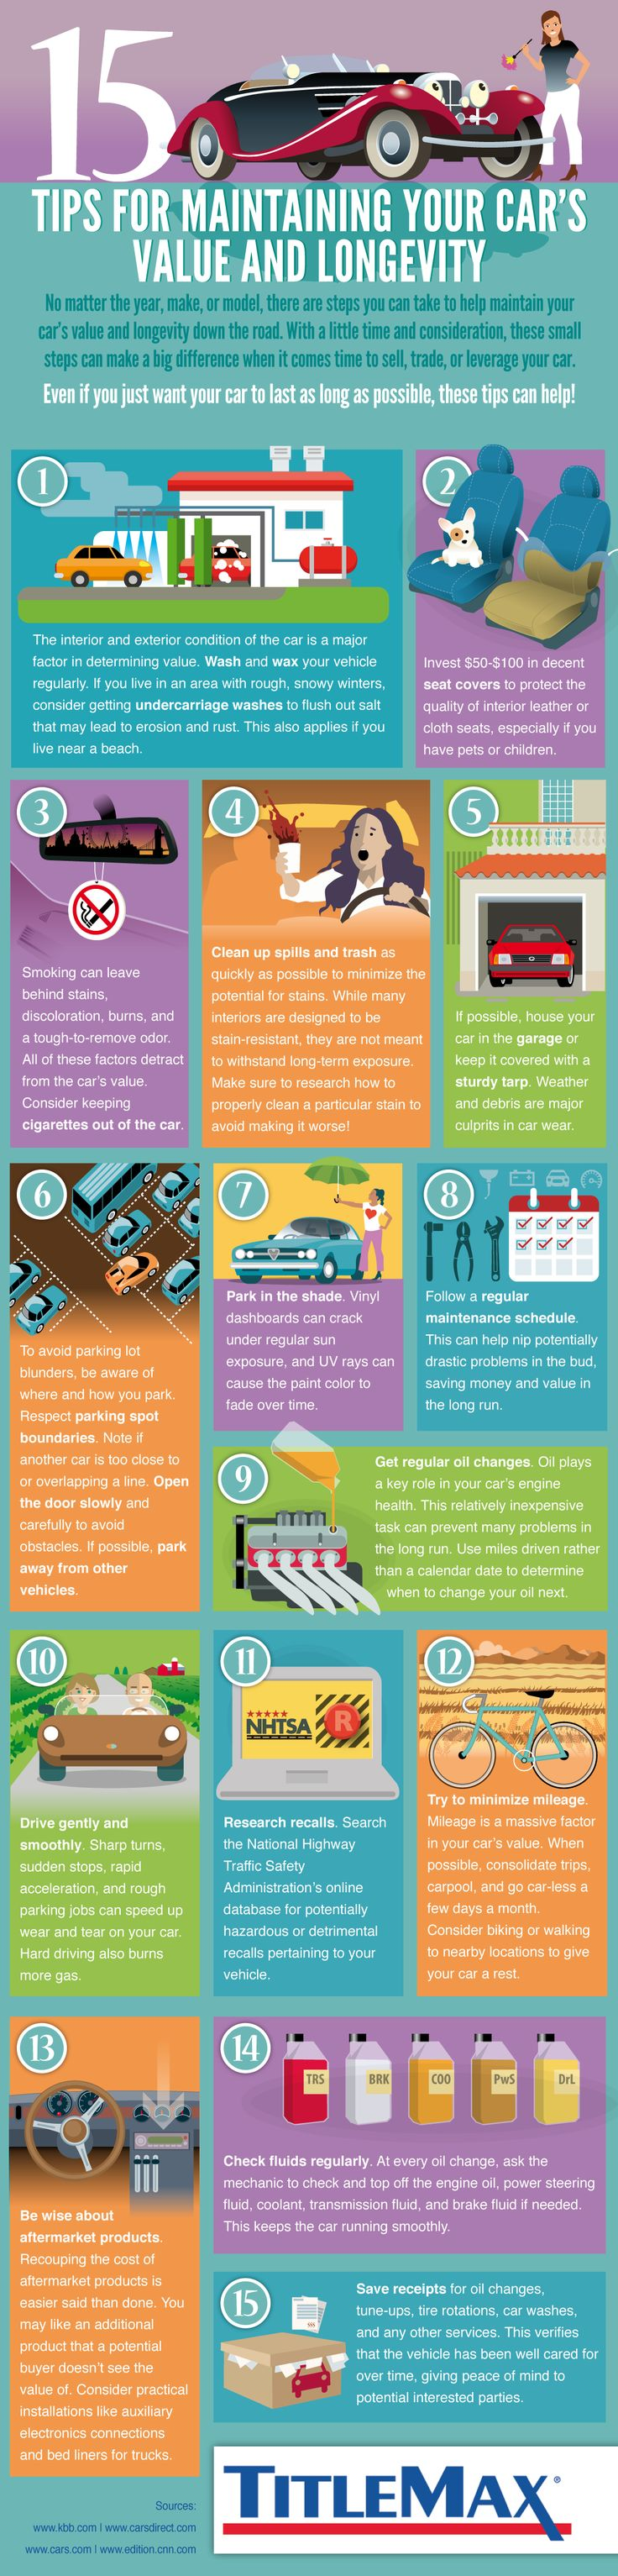 15 Tips for Maintaining your Car's Value and Longevity #Infographic #Cars #Transportation